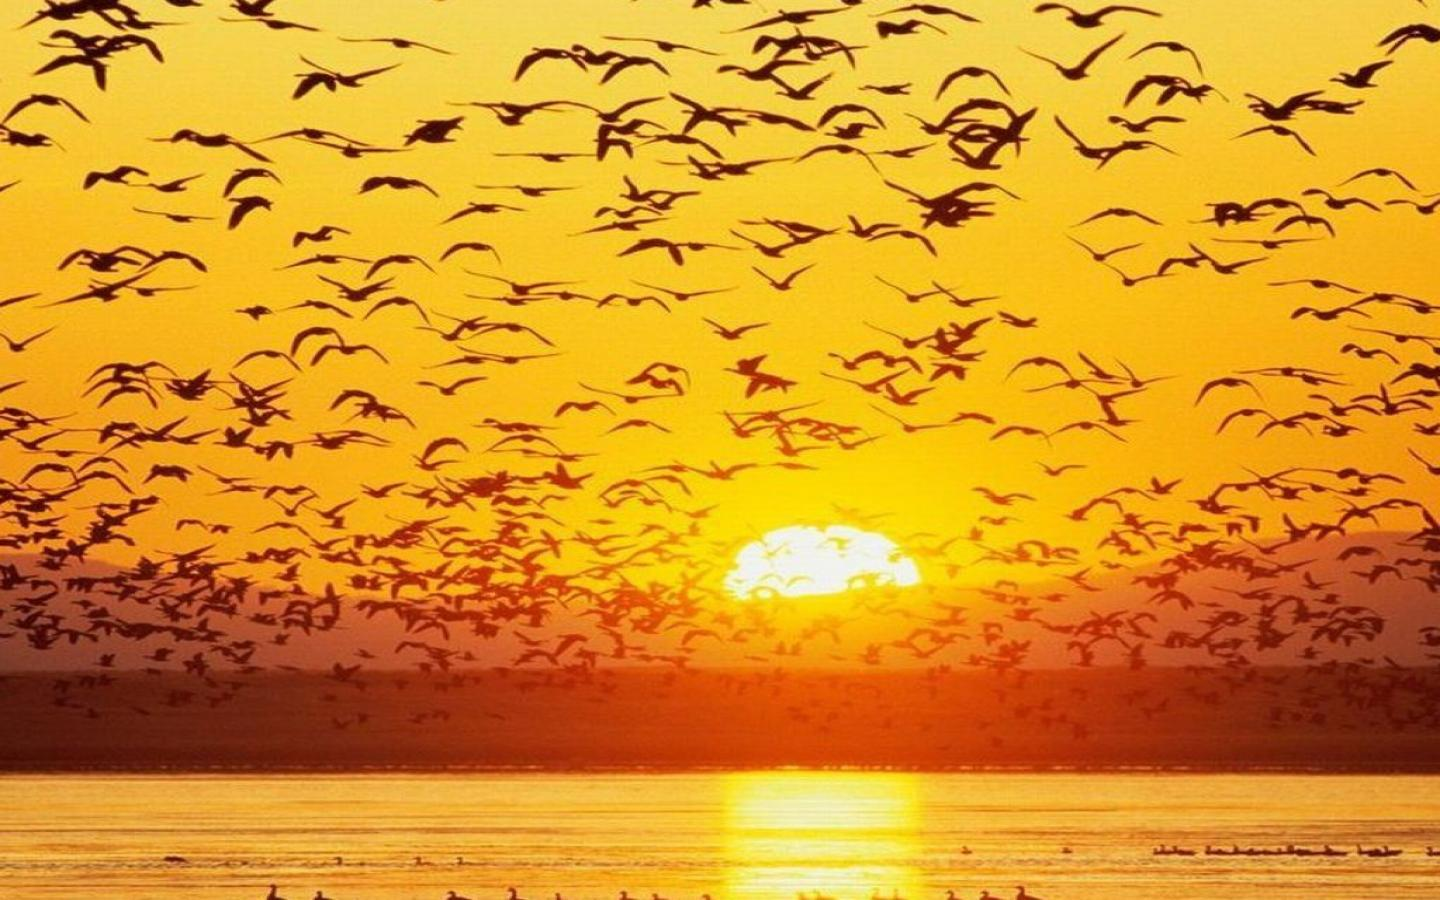 Sunrise Birds Images hd Flying Birds Sunrise